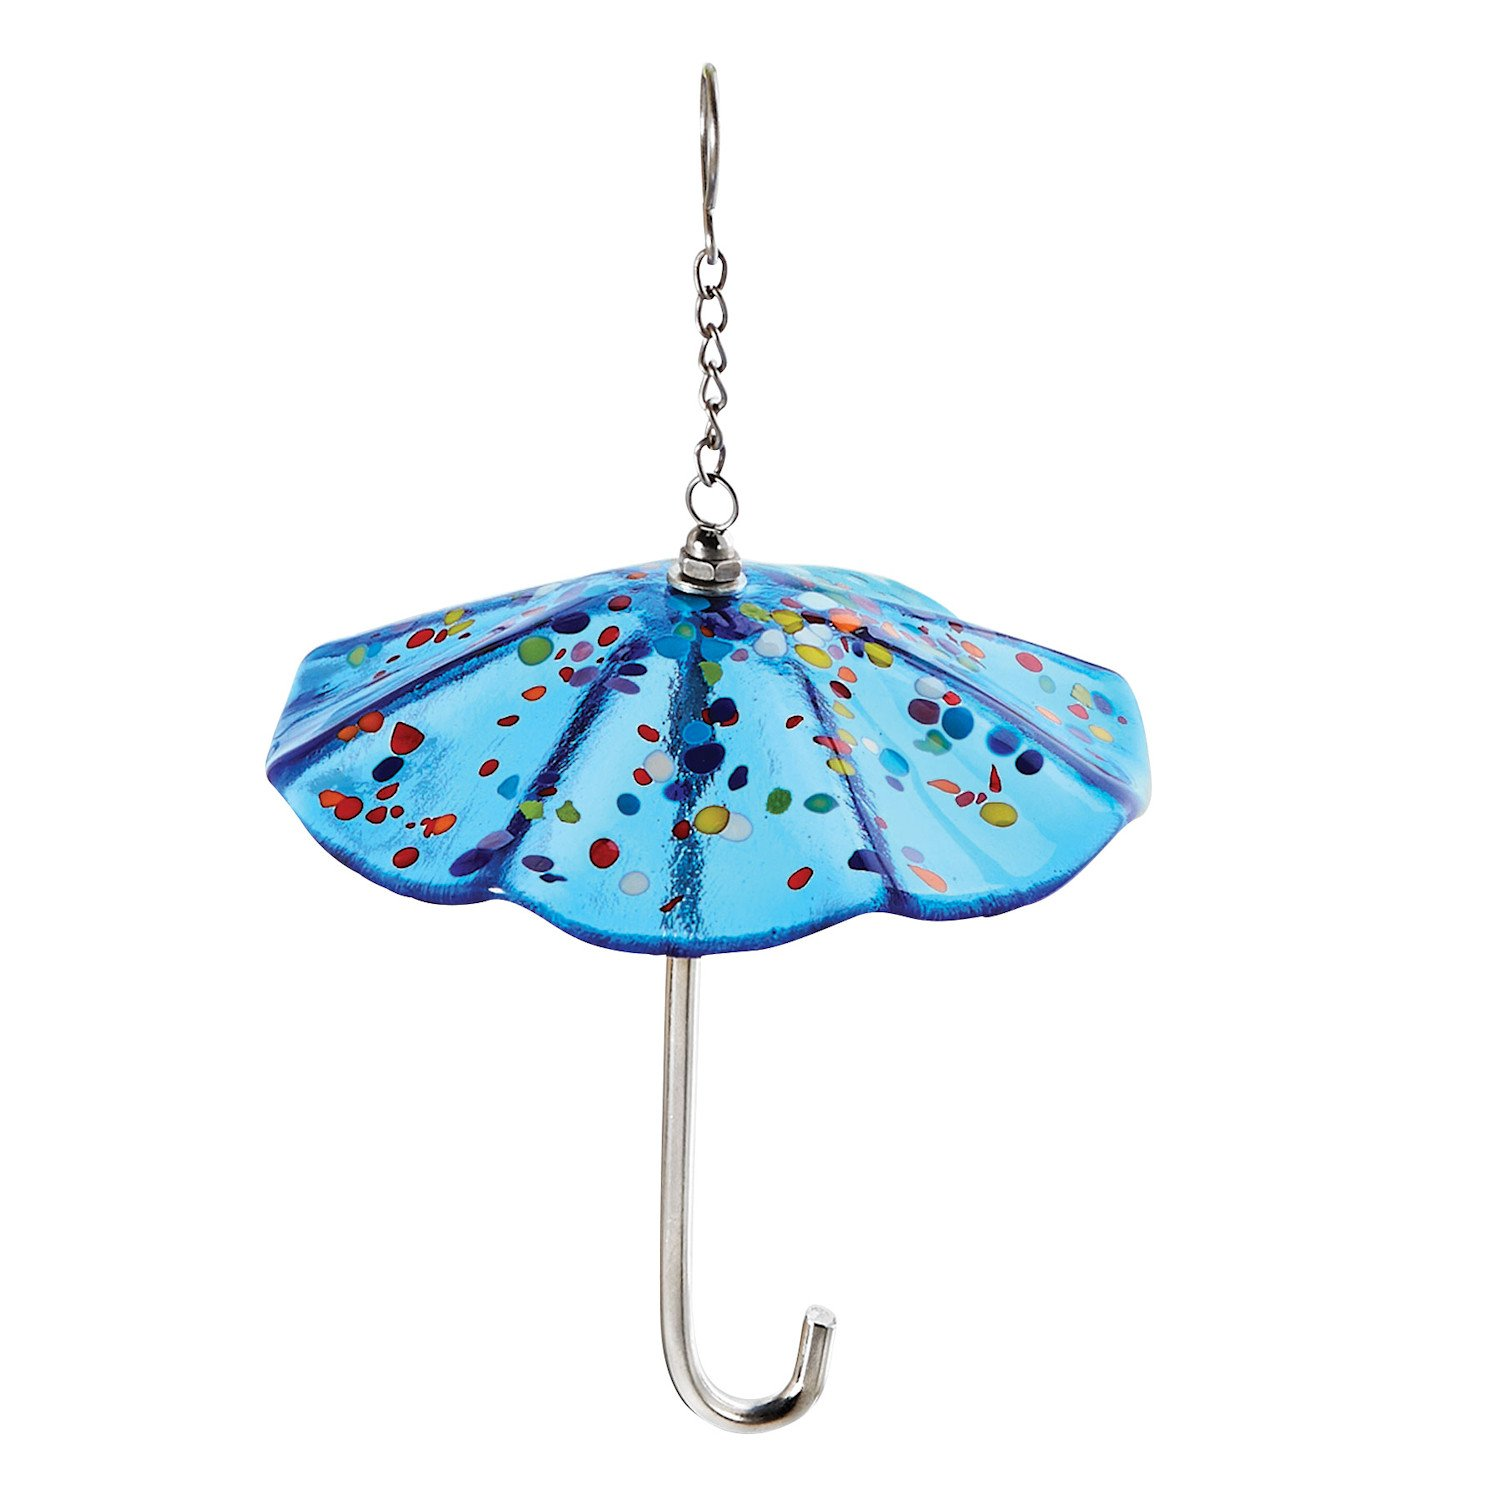 Glass Eye Studio Art Glass Umbrella Ornament - Blue Parasol with Mount Saint Helen's Glass Confetti Accents